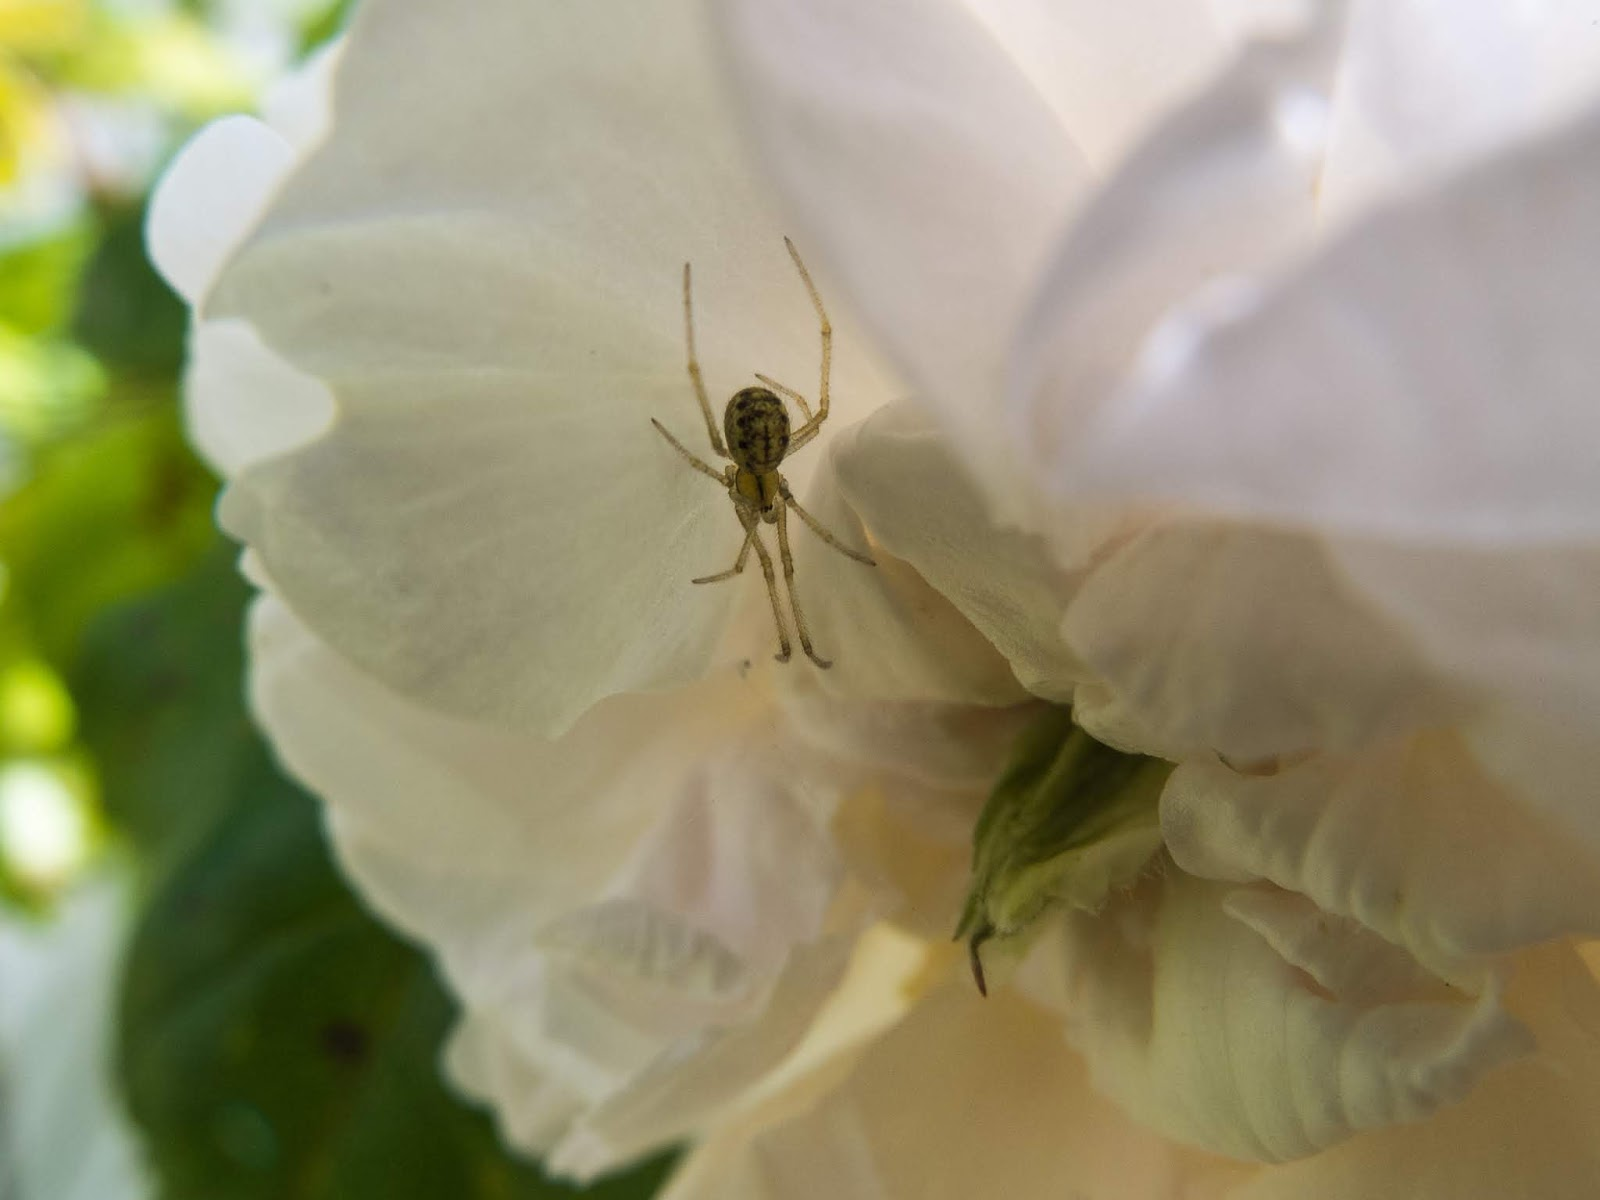 A close up of a small spider inside a White Rose.